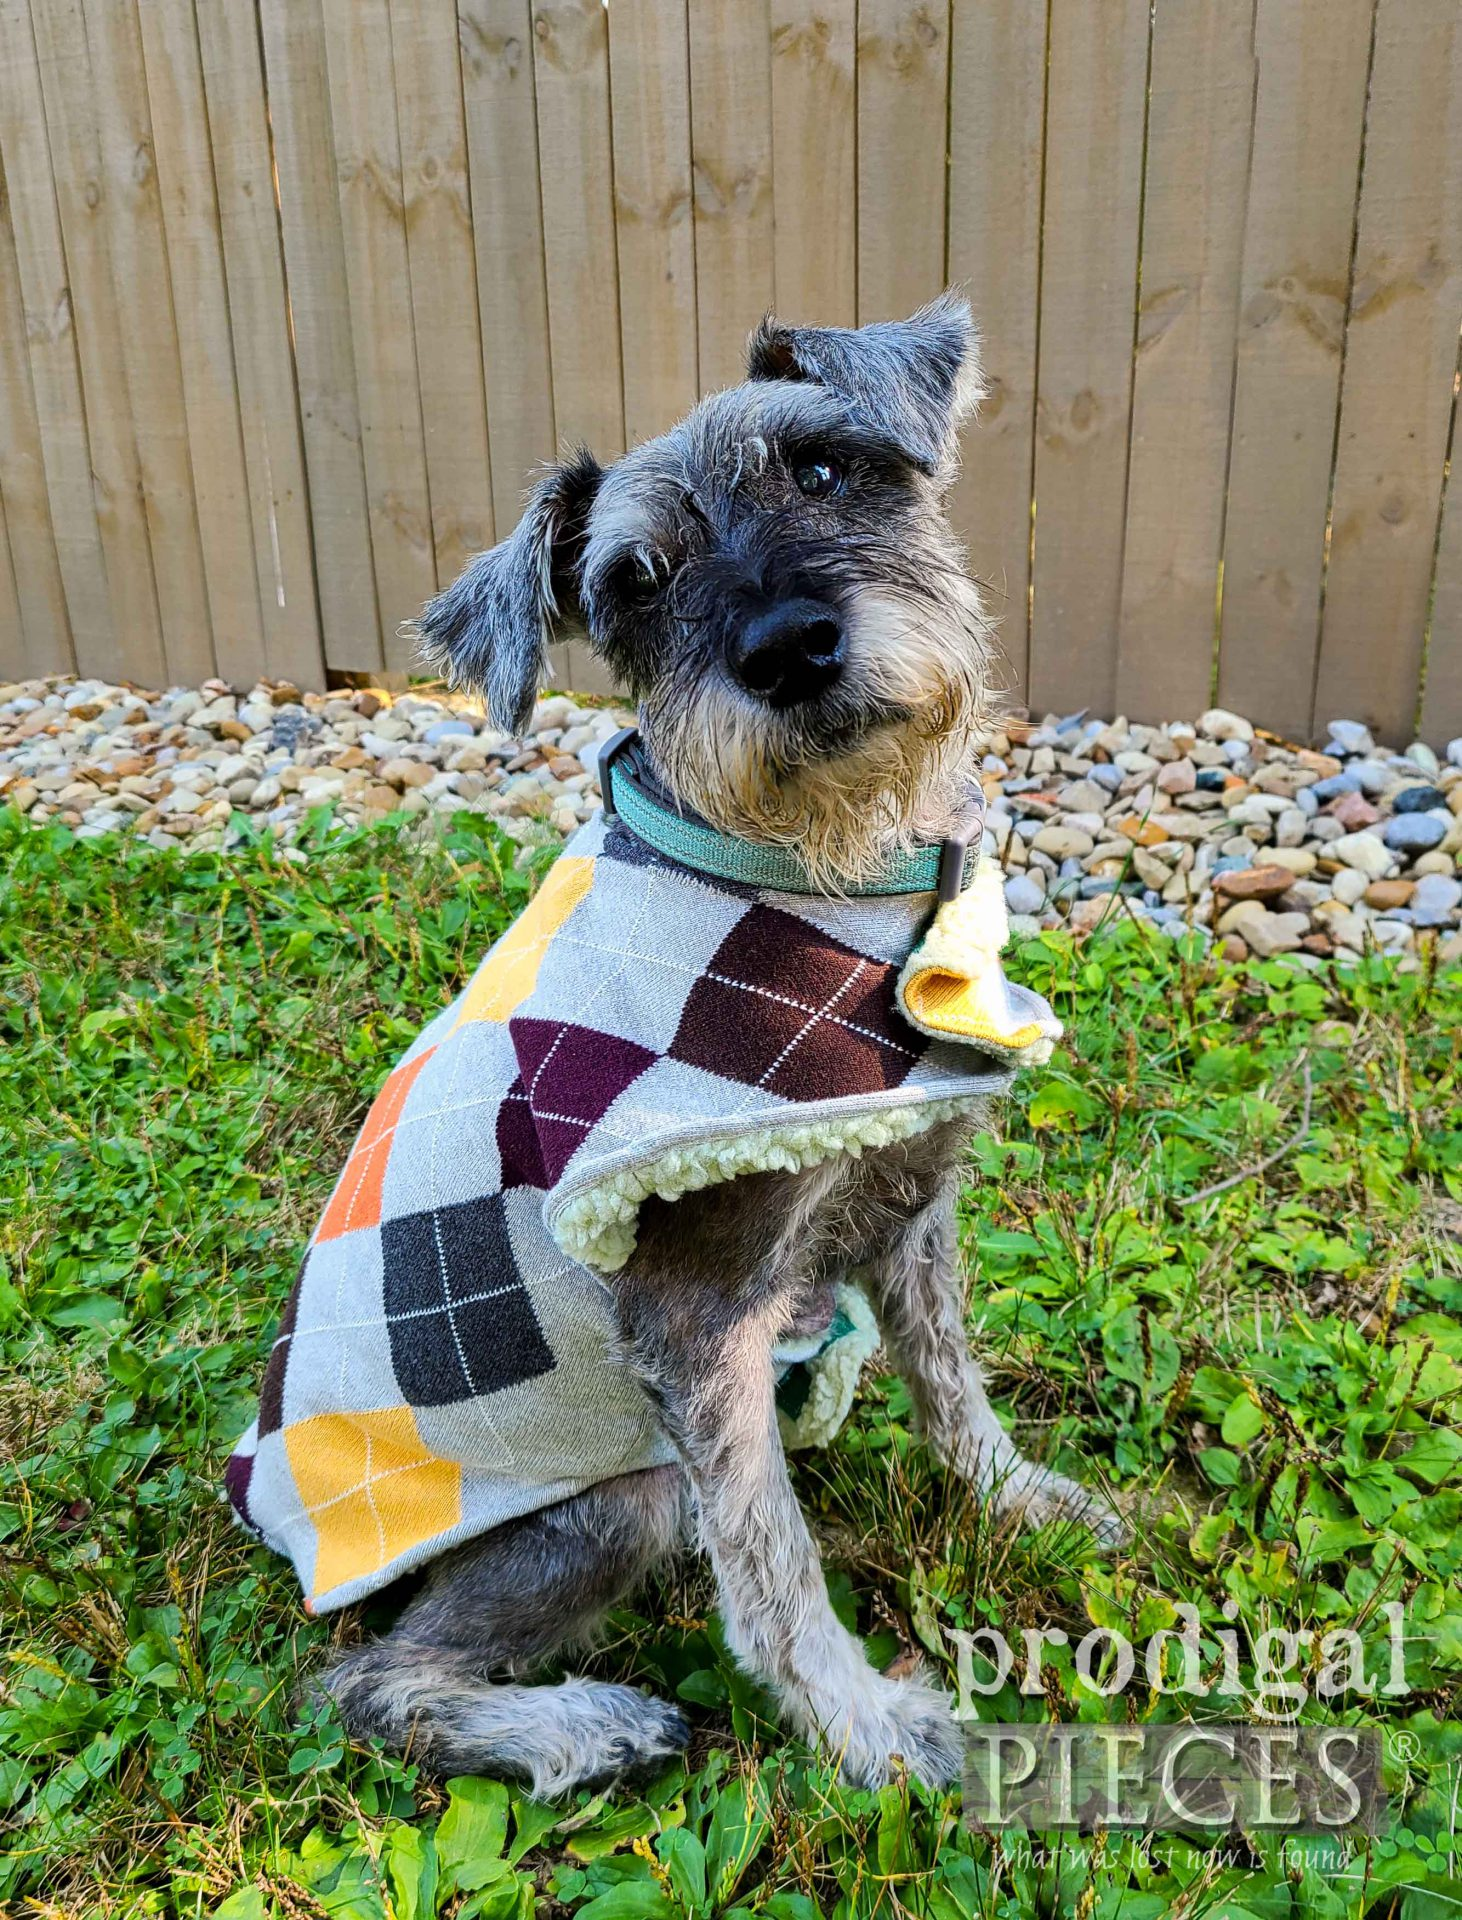 Argyle DIY Dog Coat from Upcycled Sweaters by Larissa of Prodigal Pieces | prodigalpieces.com #prodigalpieces #pets #diy #handmade #dog